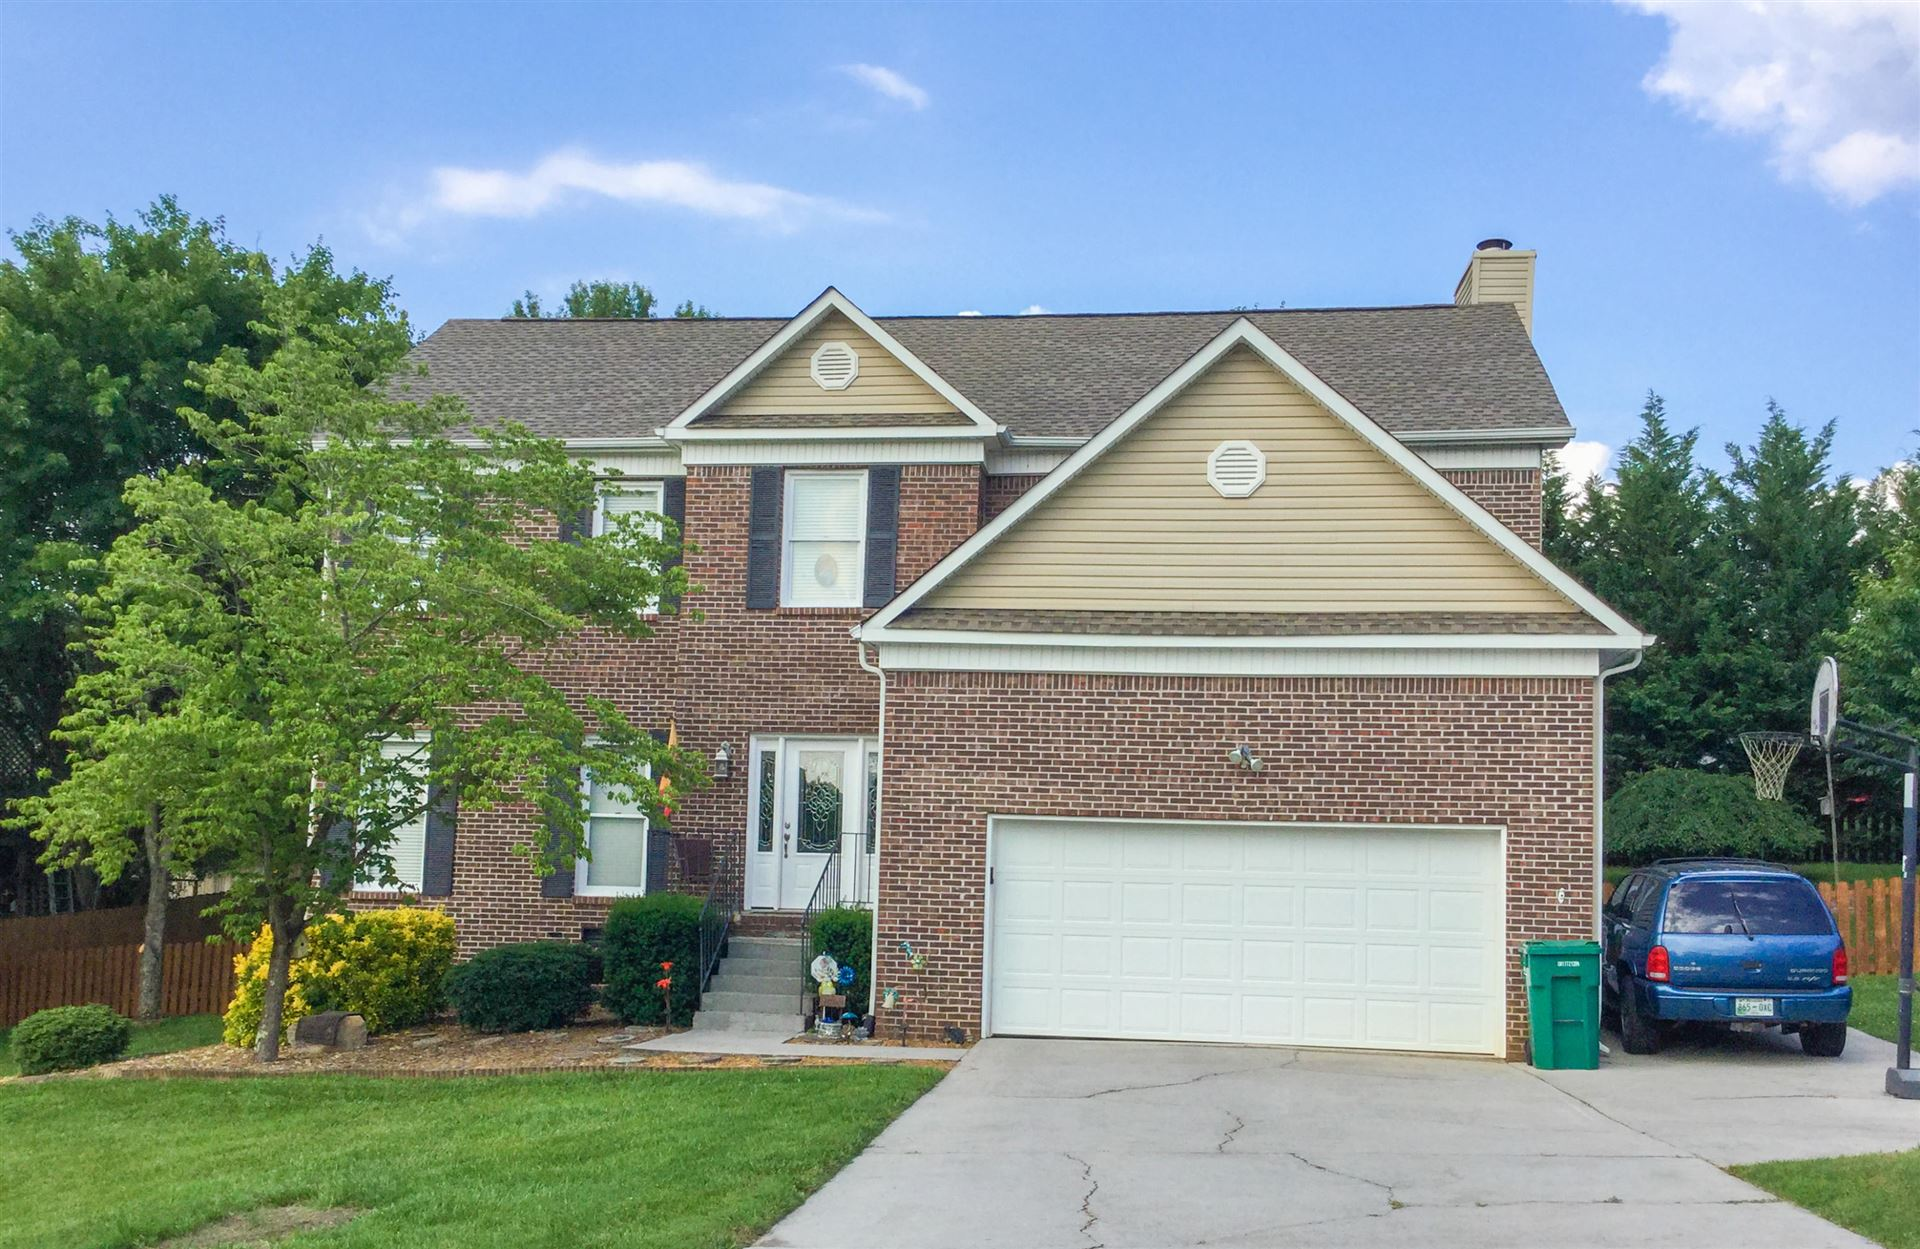 Photo of 1013 Chesapeake Way, Knoxville, TN 37923 (MLS # 1140135)